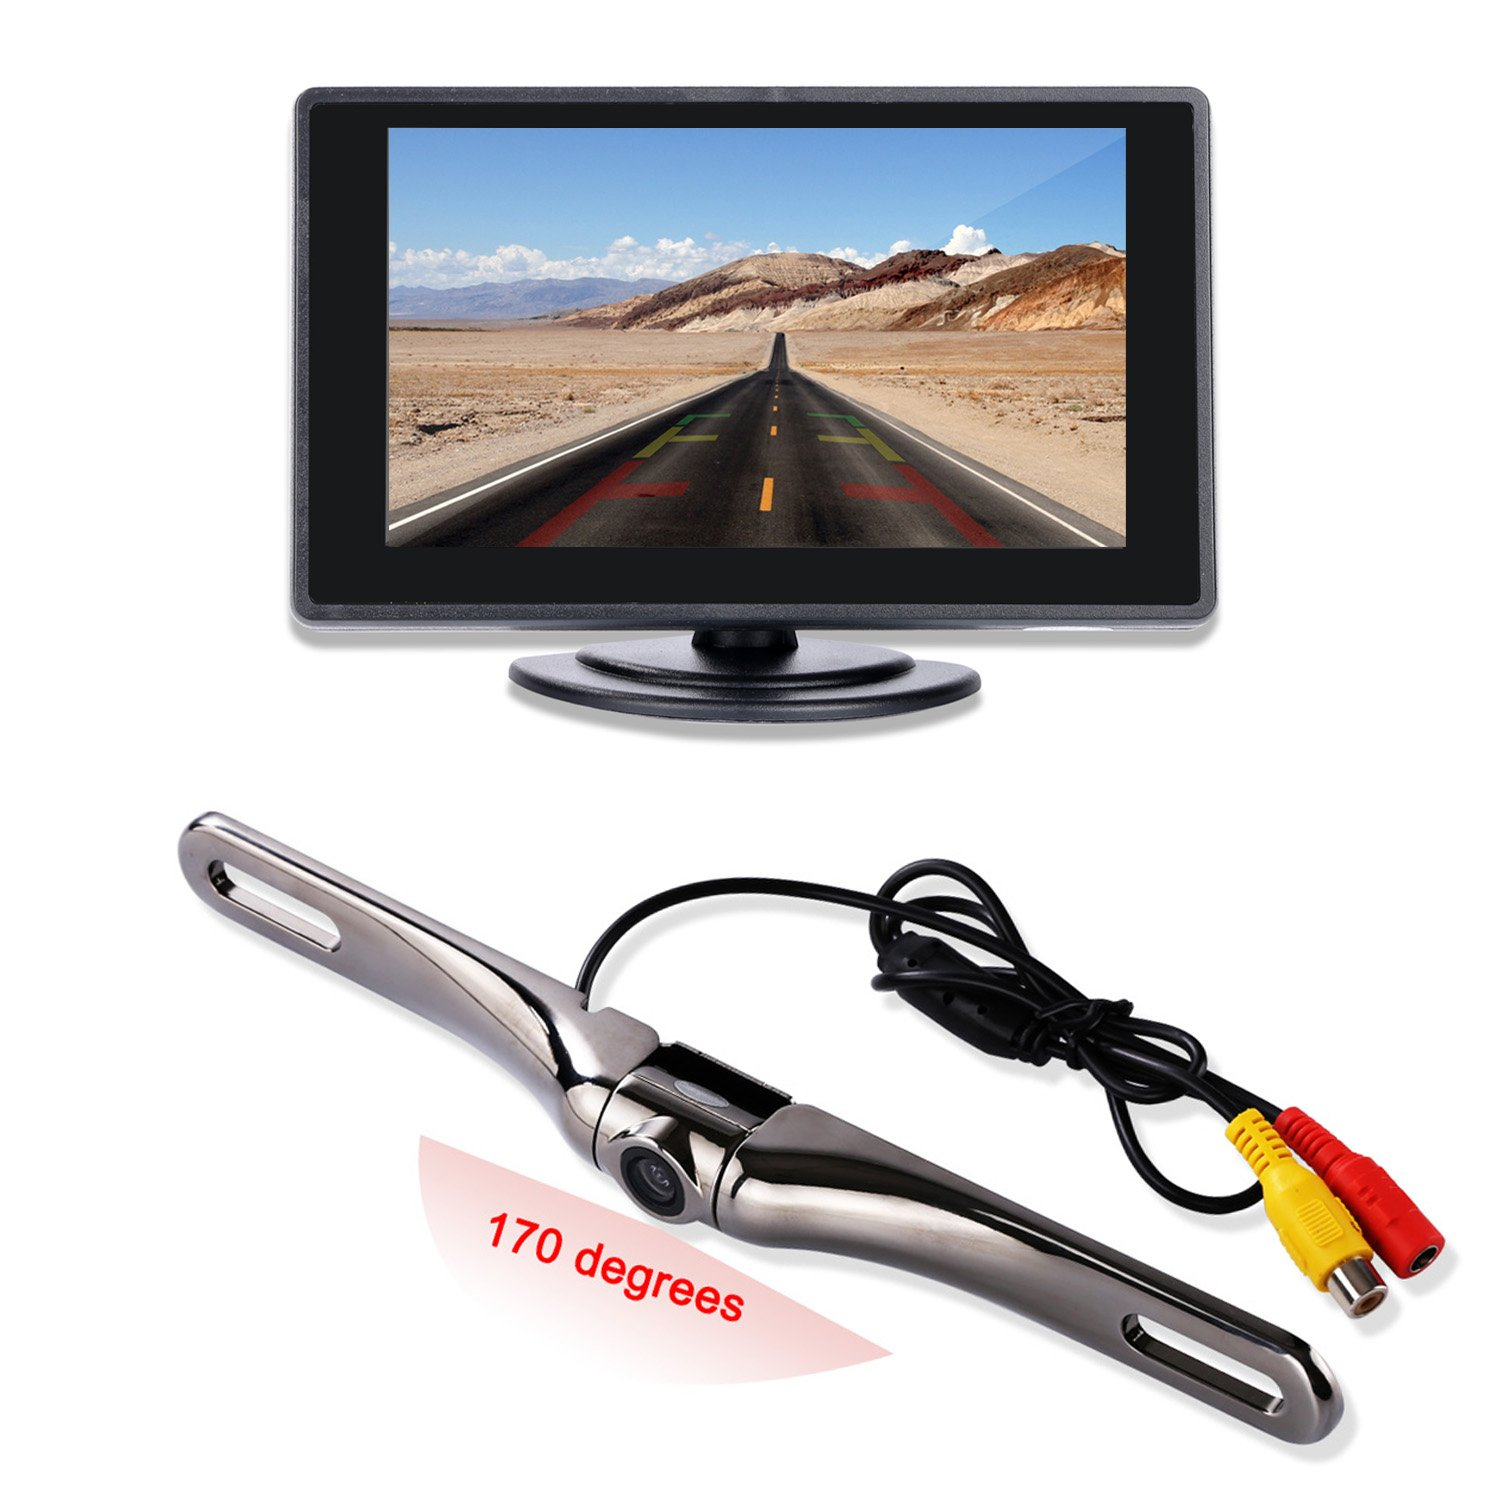 """Backup Camera and Monitor Kit for Car,4.3"""" TFT LCD Monitor with170 degree Wide Angle Waterproof License Plate Backup Camera-Swivel Angle Adjustable"""